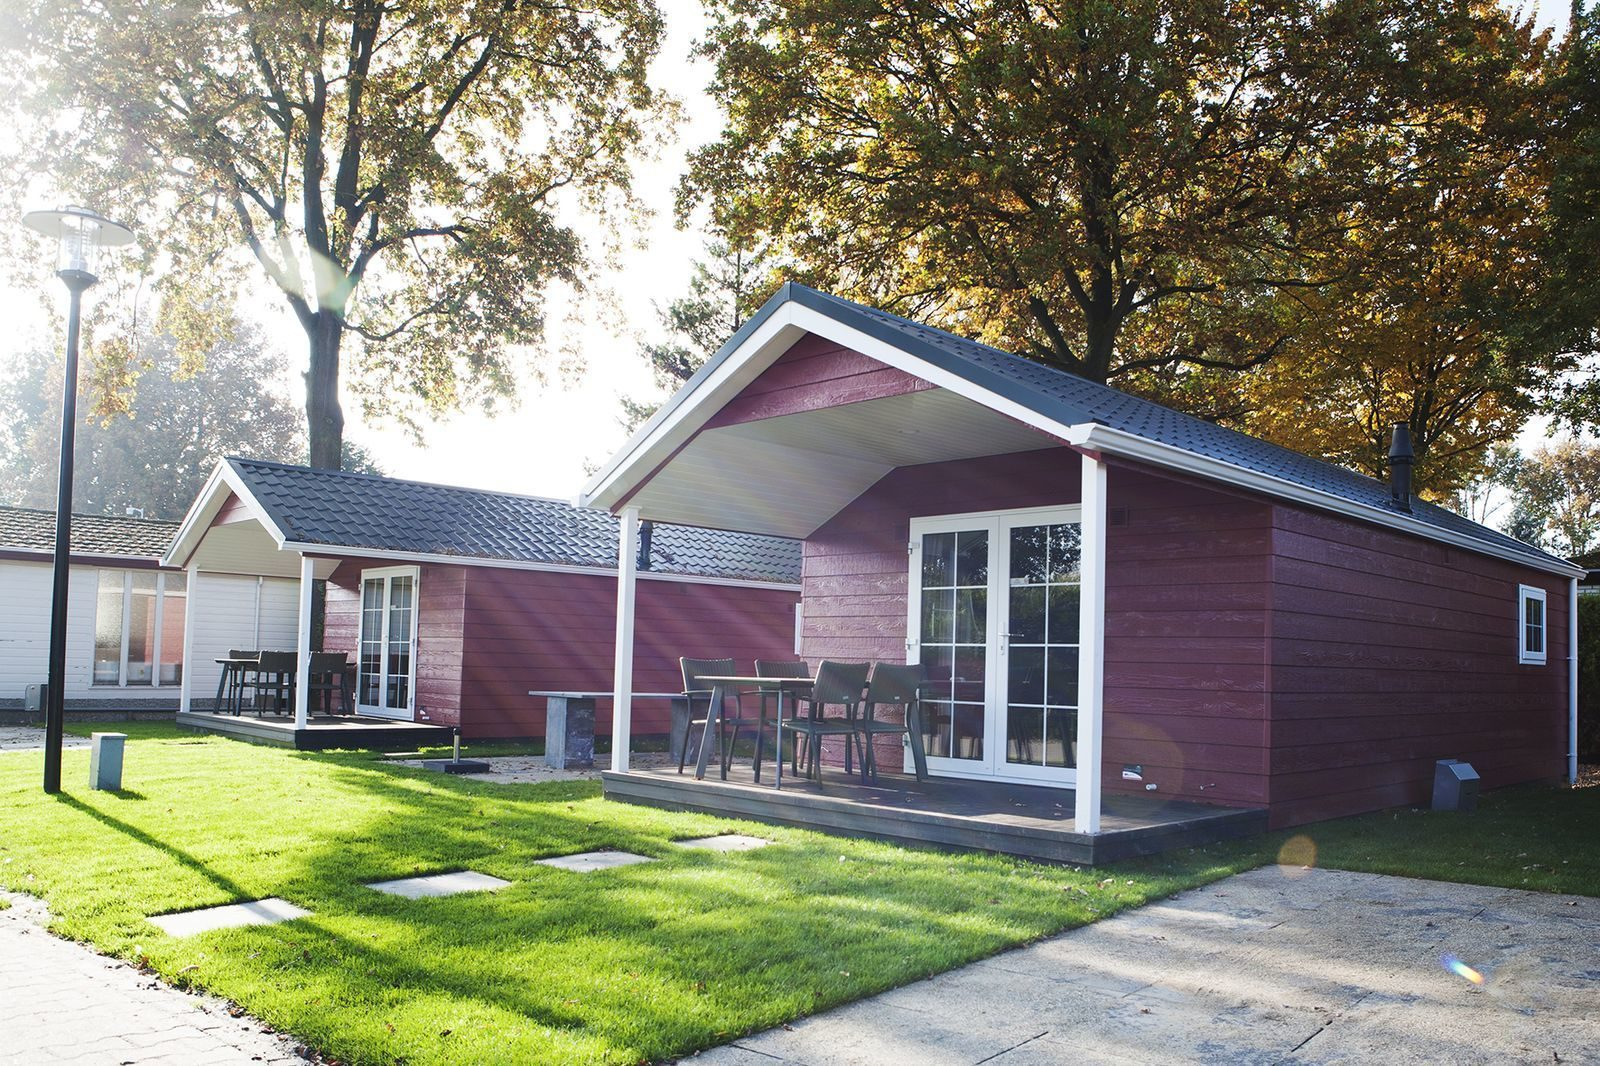 Book your own chalet and enjoy the Veluwe